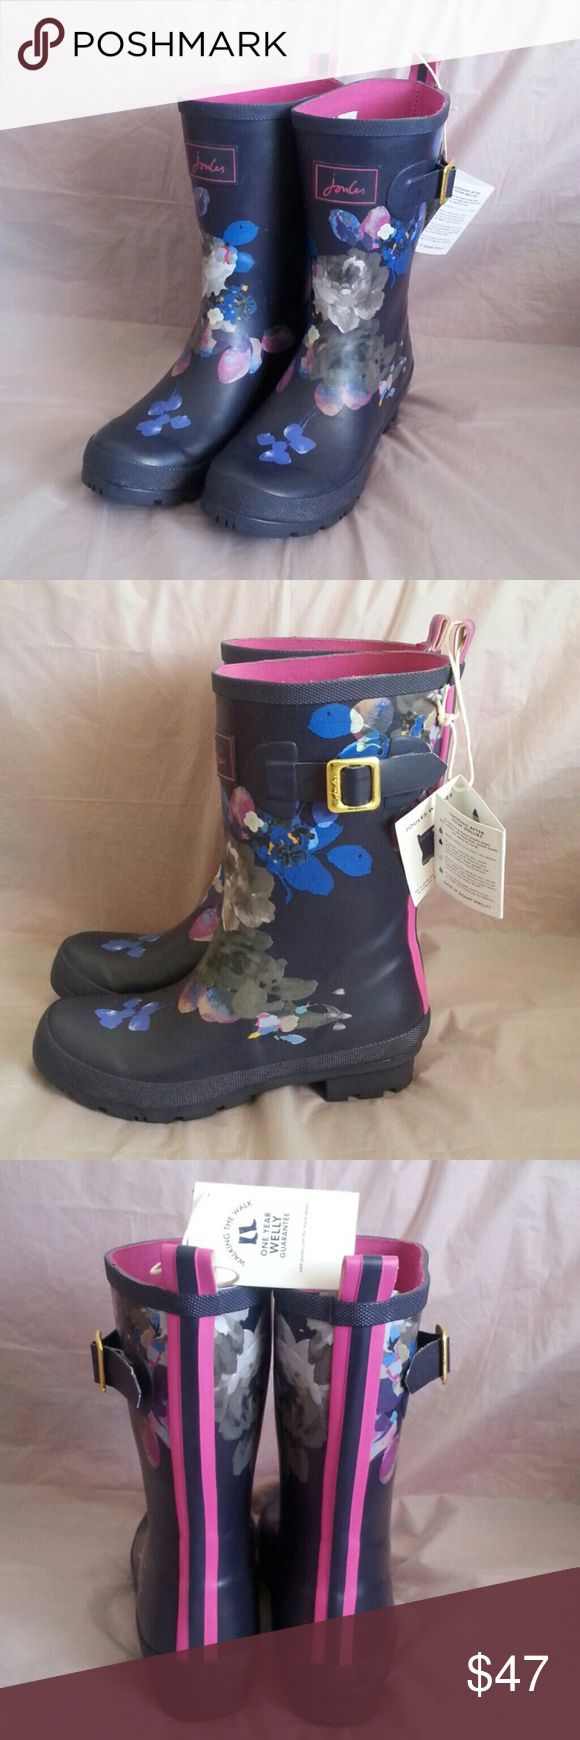 Molly Welly Rain Boots by: Joules Wellie Navy Floral  -Tyre-inspired outsole for effective water dispersal & grip. -Strap & buckle design feature. -Handmade w/ natural leather. Why b cute wet when u can walk around cute & dry. Joules Wellie Shoes Winter & Rain Boots